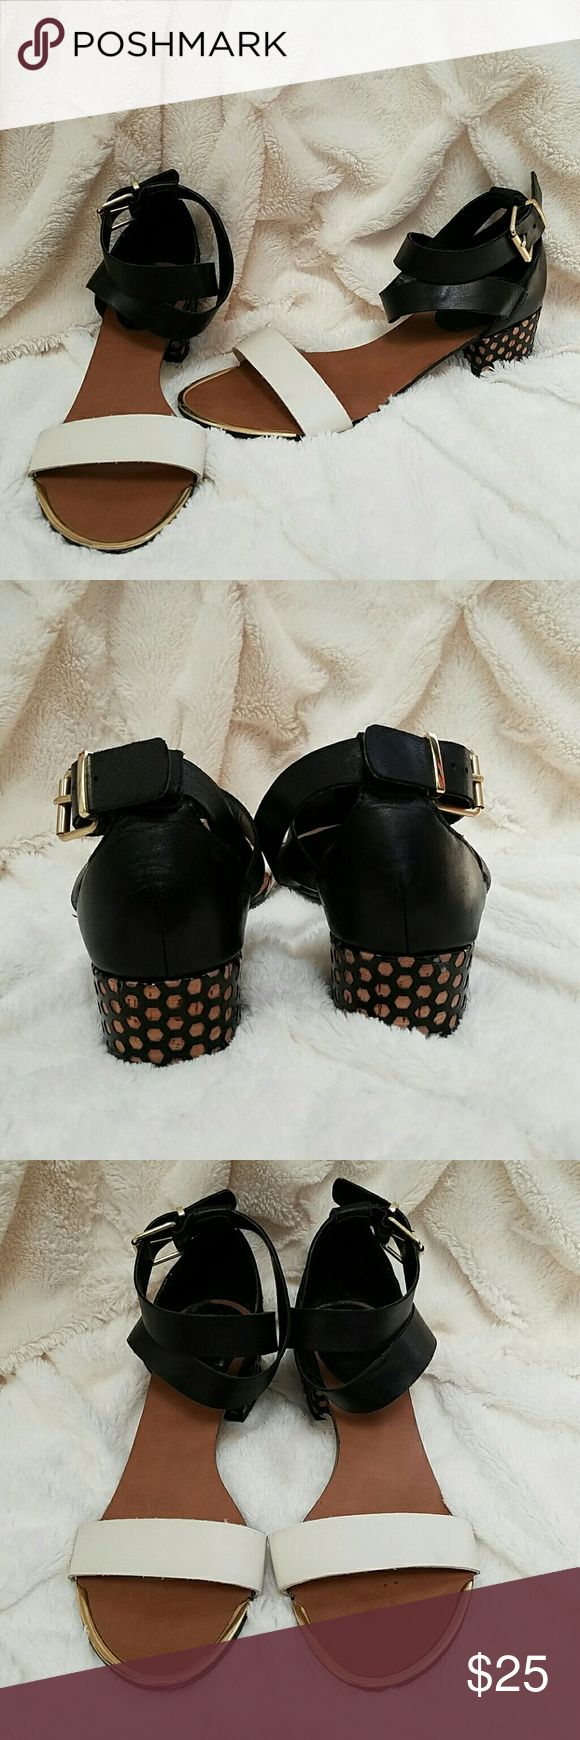 Dolce Vita Heeled Sandals Black and cream heeled sandals. Polka dot heel. Gold hardware. A little worn on the bottom. Dolce Vita Shoes Sandals